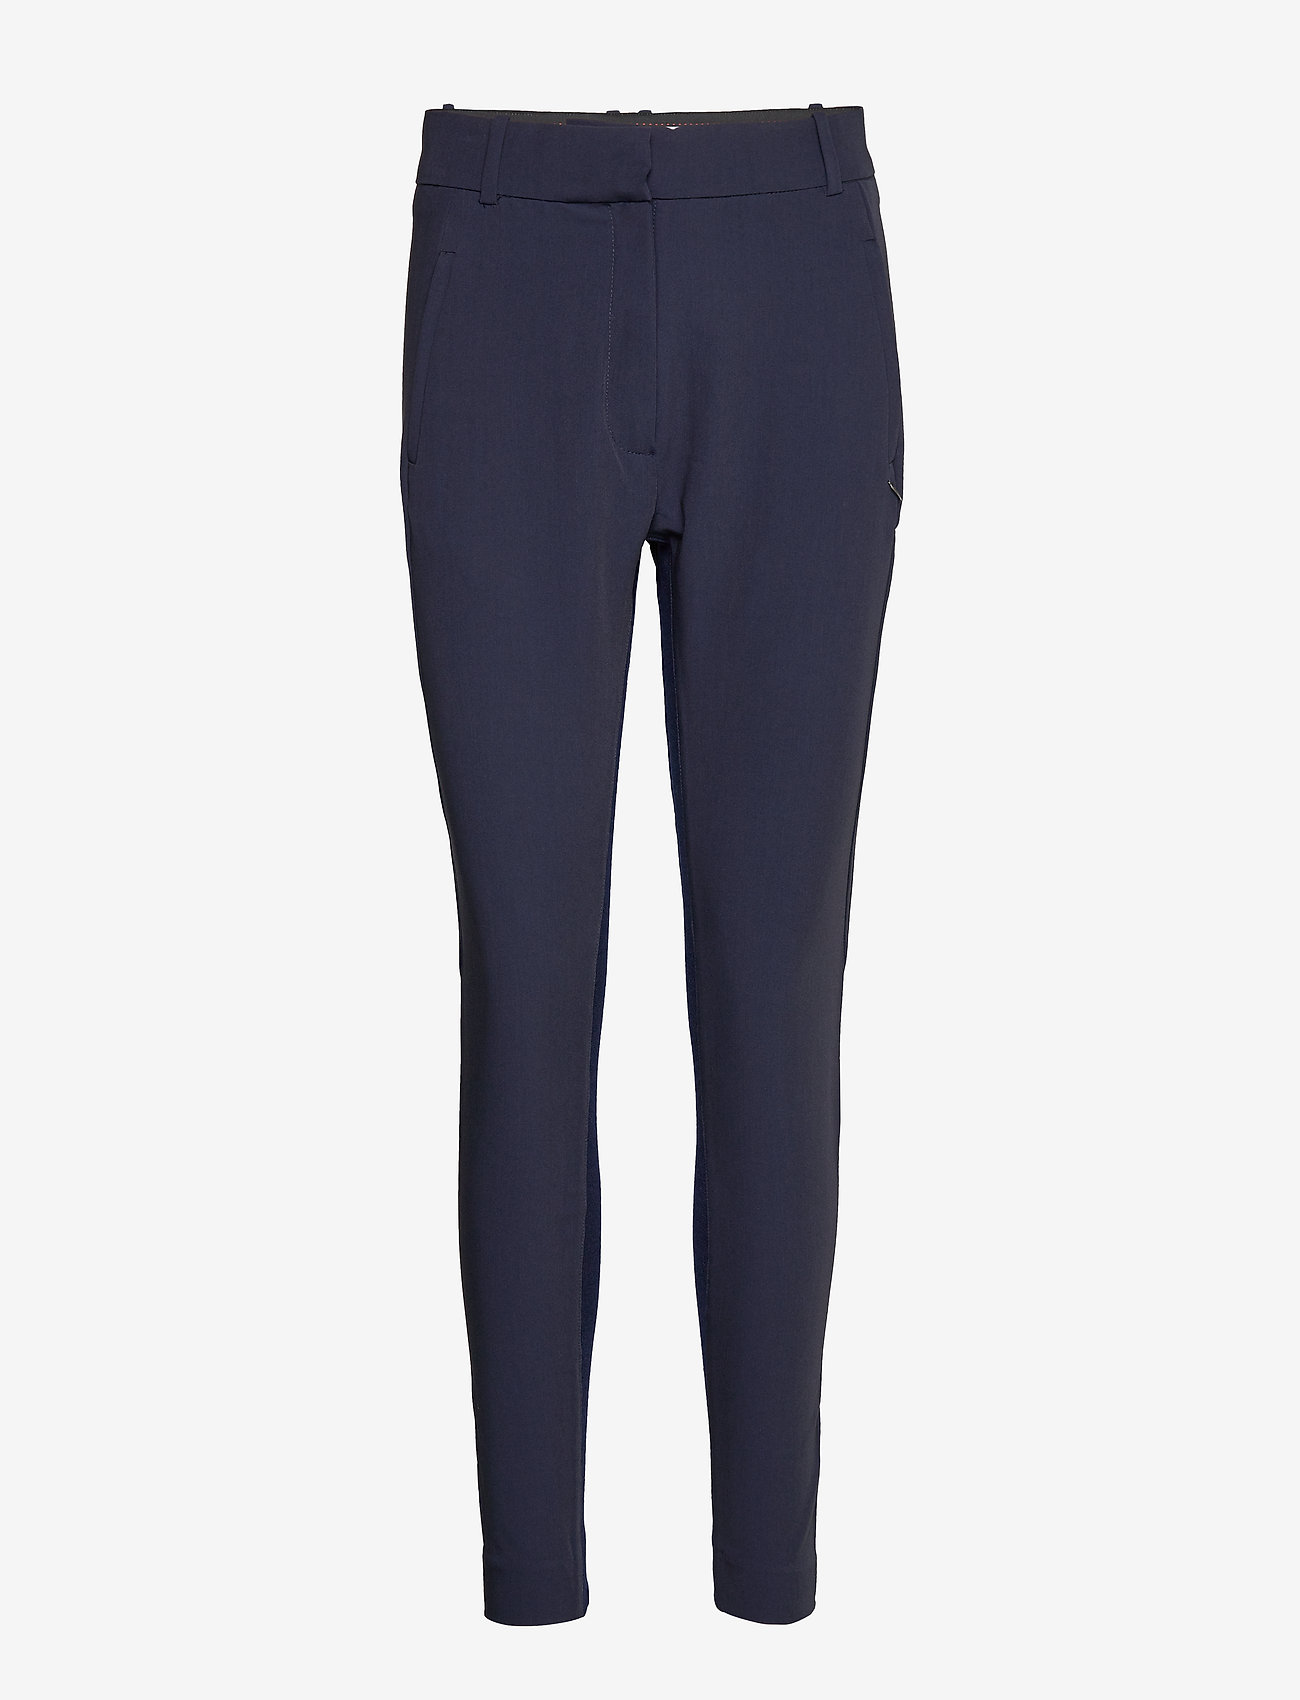 Coster Copenhagen - Suit pants - Coco - broeken med skinny fit - dark blue - 0